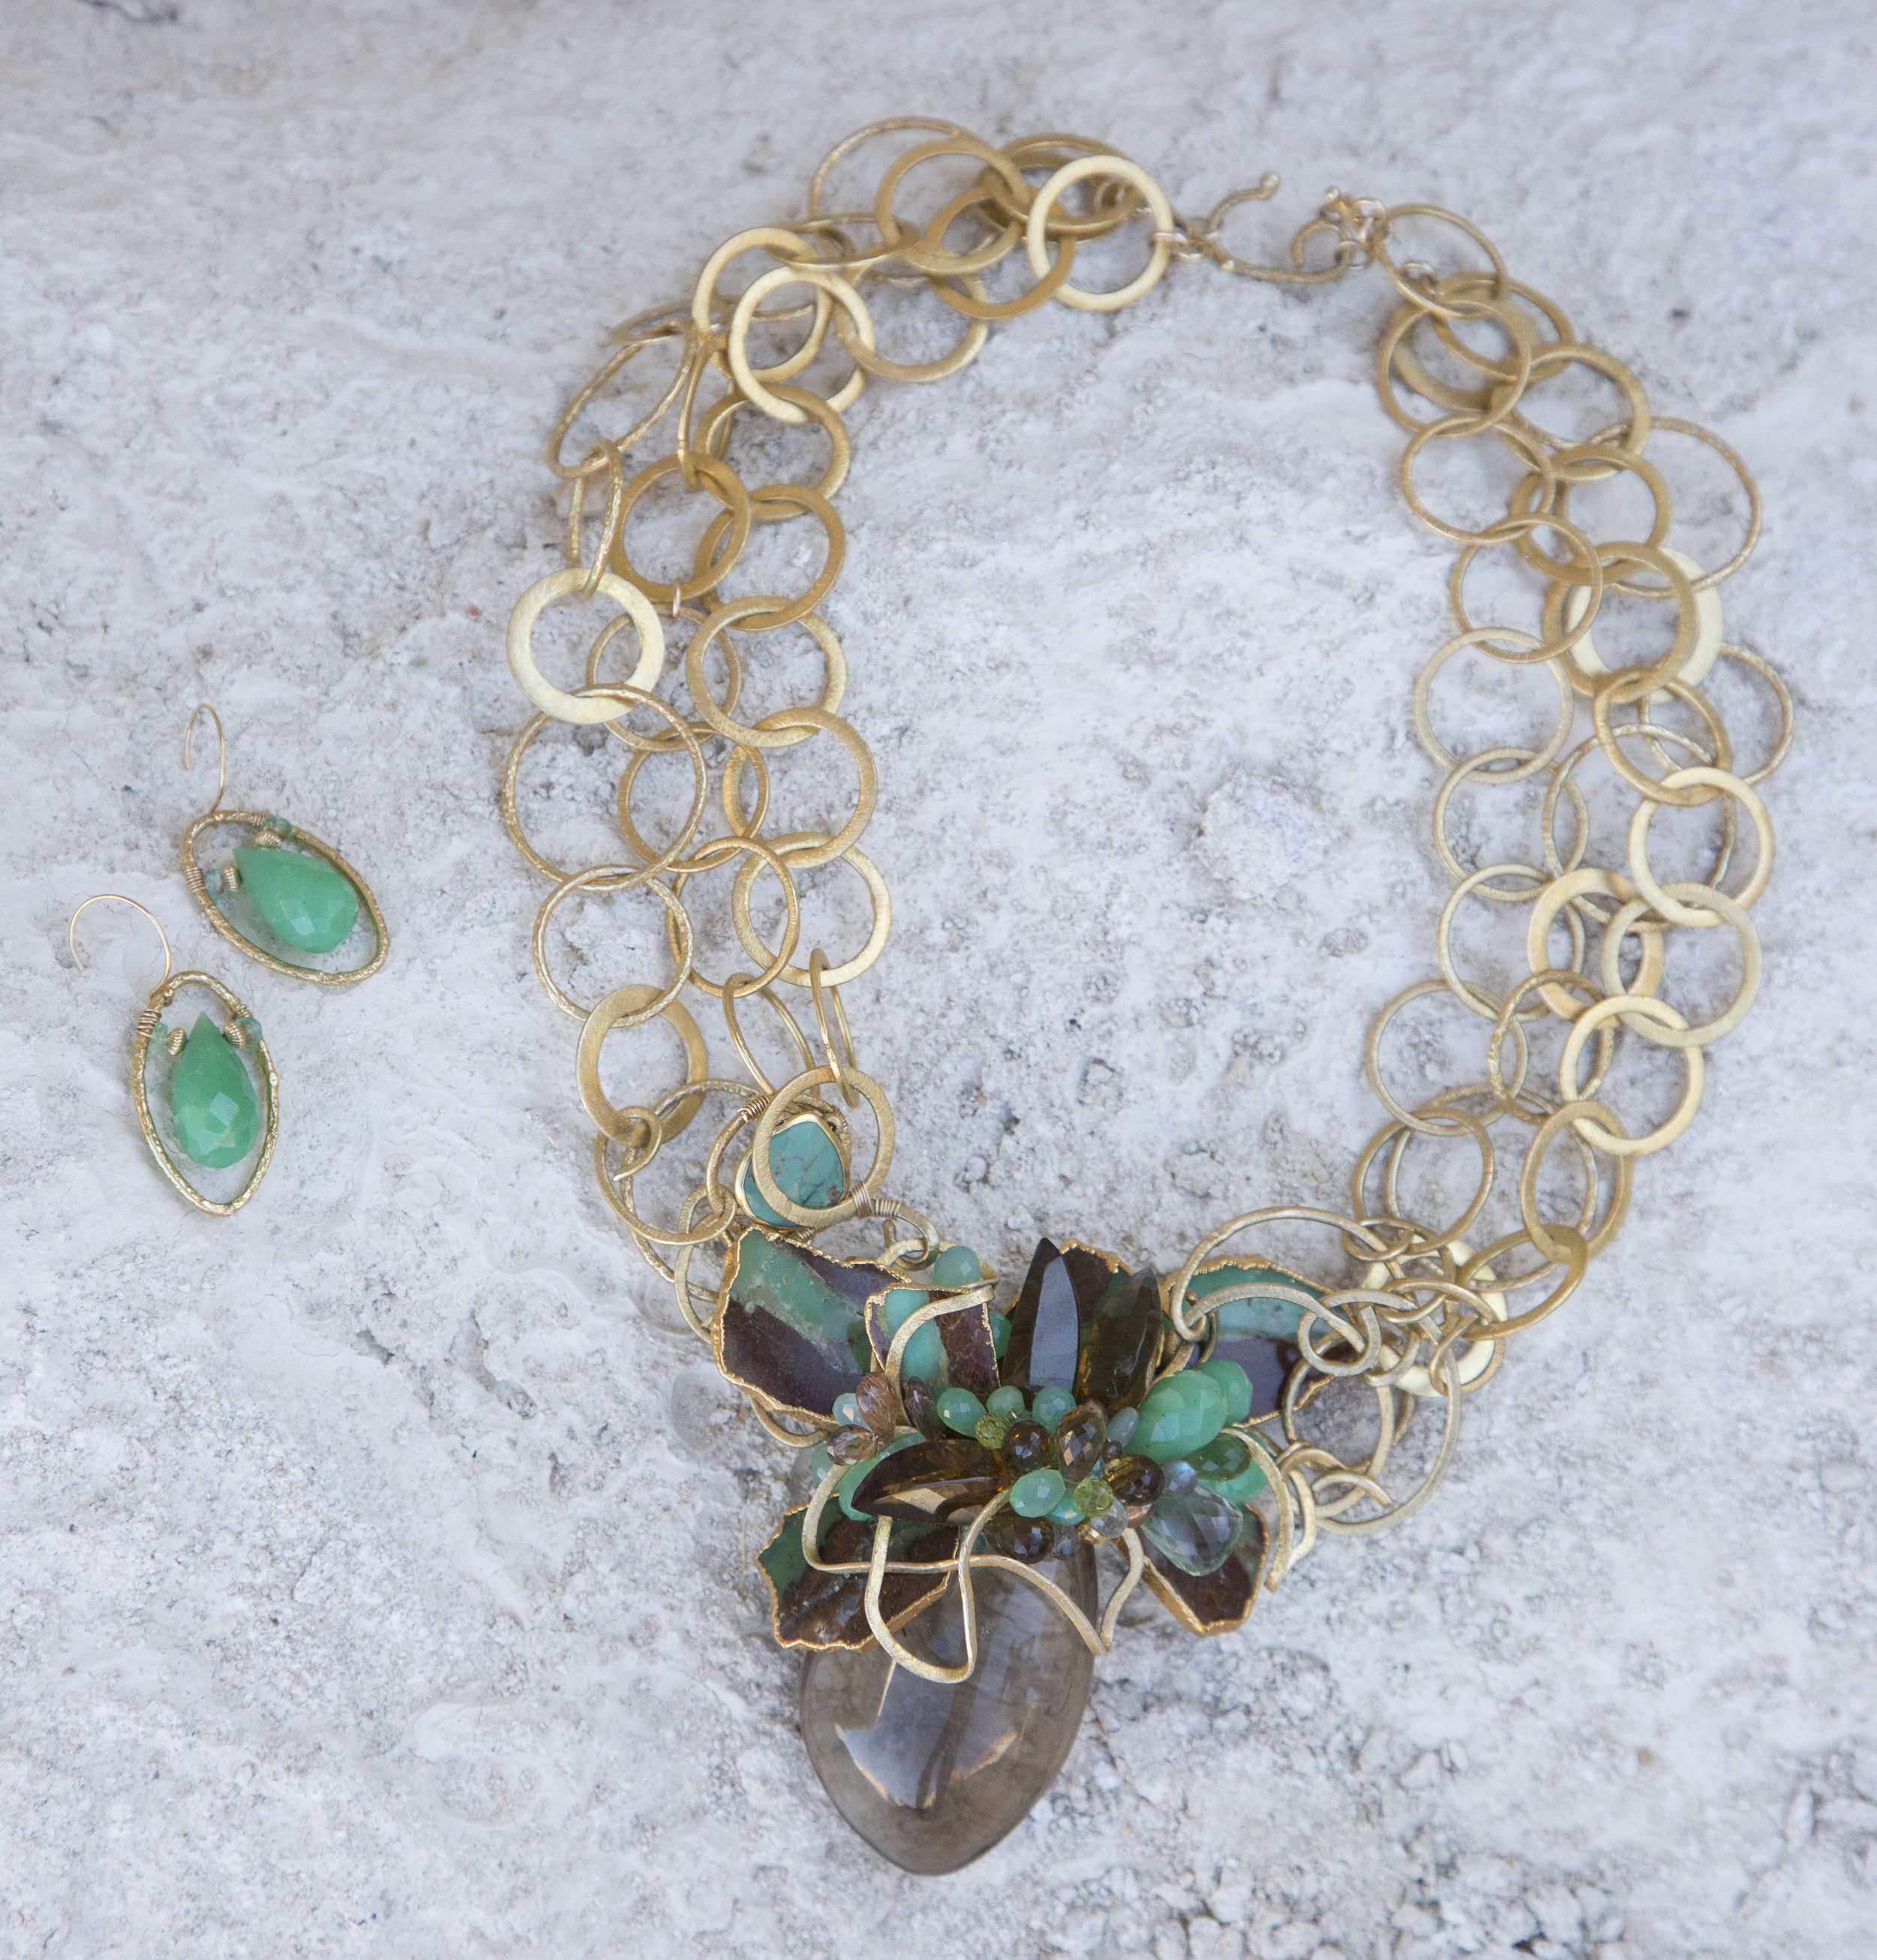 statement necklace with a large smoky topaz pendant with gold link chains